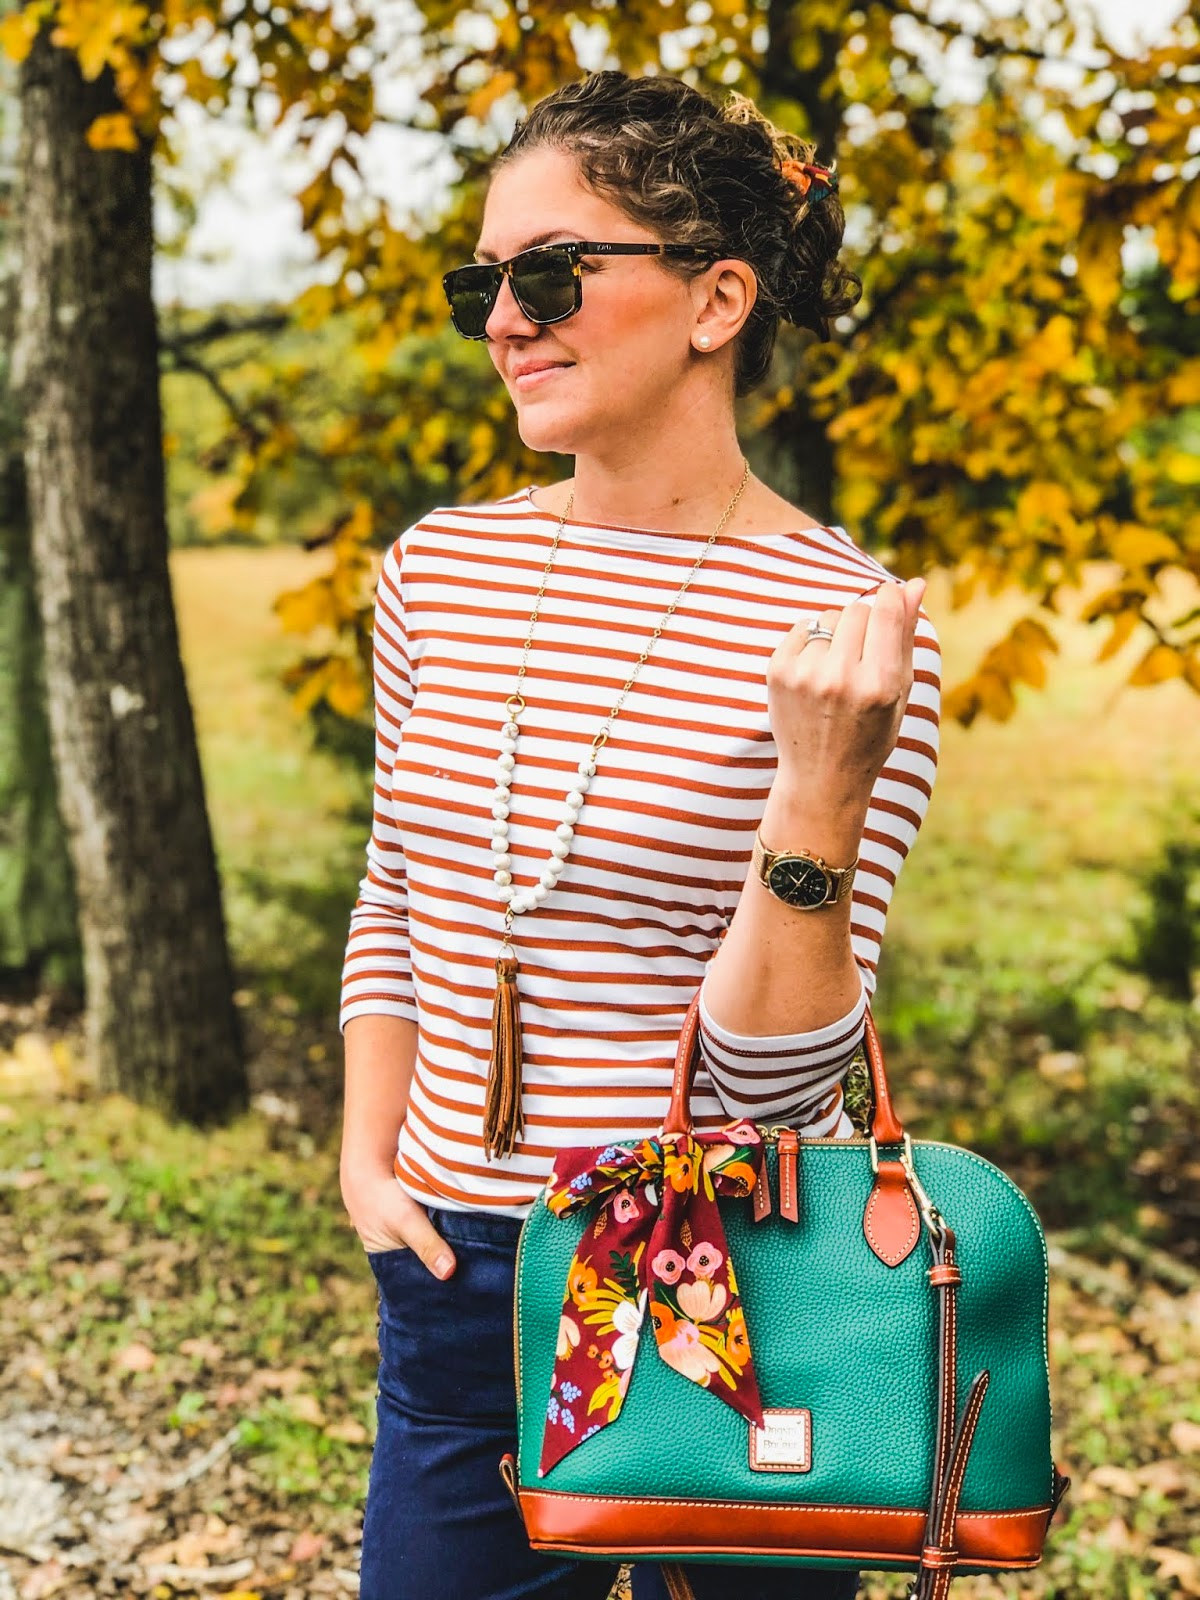 Cute fall outfit, JORD giveaway, JORD sunglasses, Dooney & Bourke, Daisy Faye Designs, Camel mules, Seychelles mules, Target shirt, Gap pants